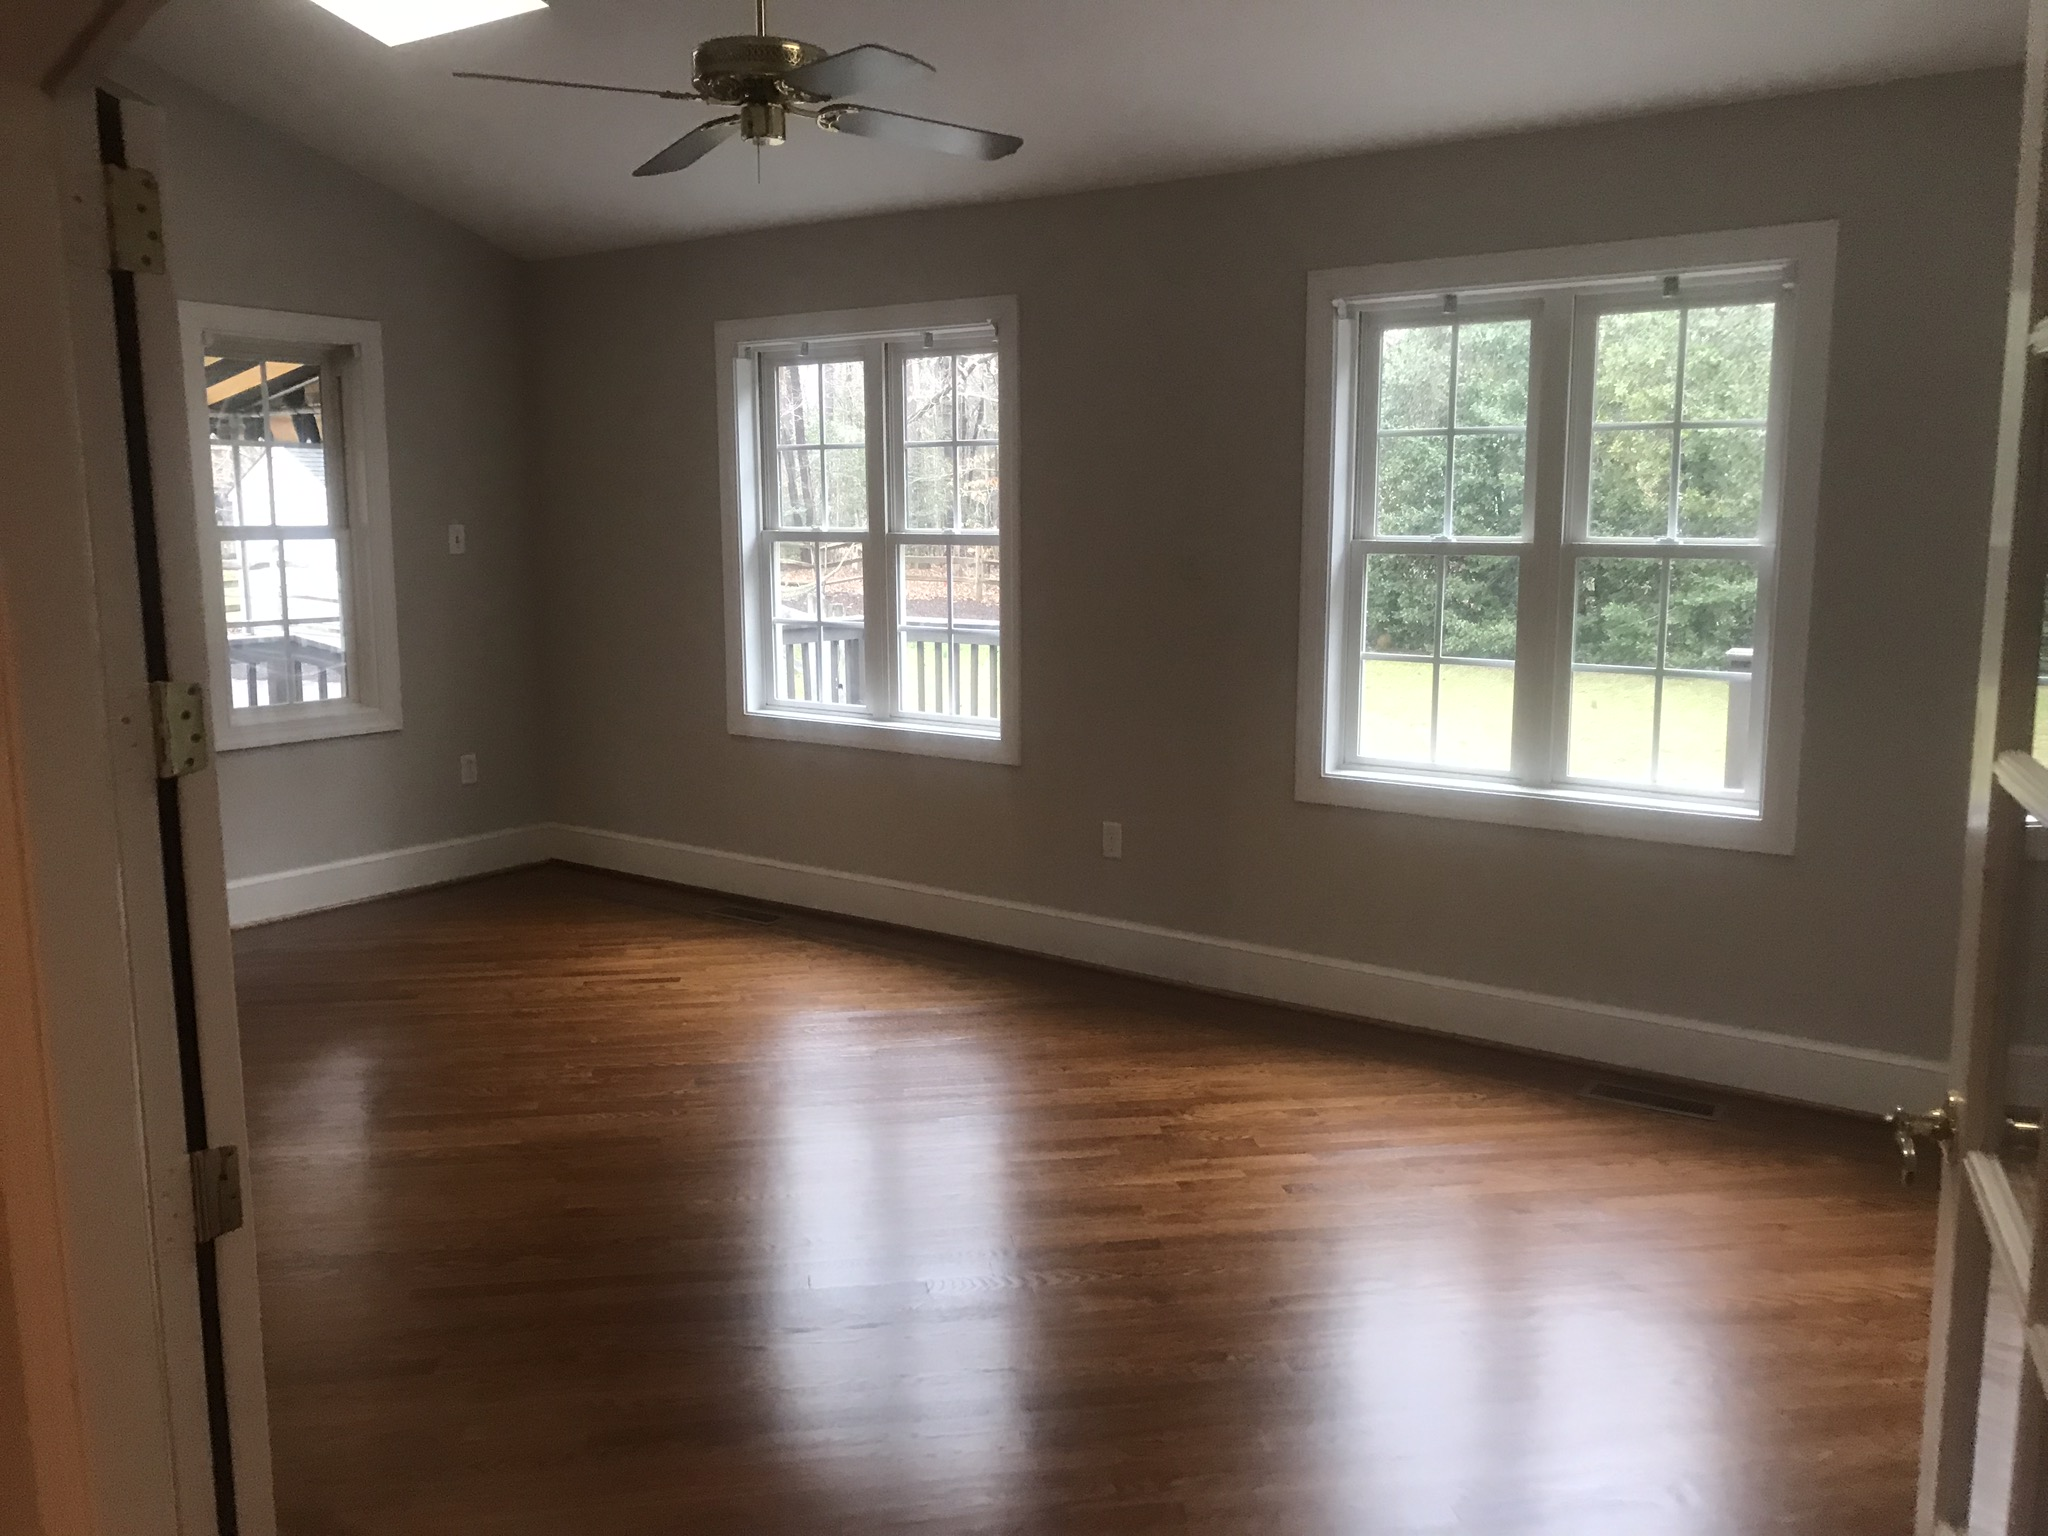 Before Staging a Room with Lack of Purpose